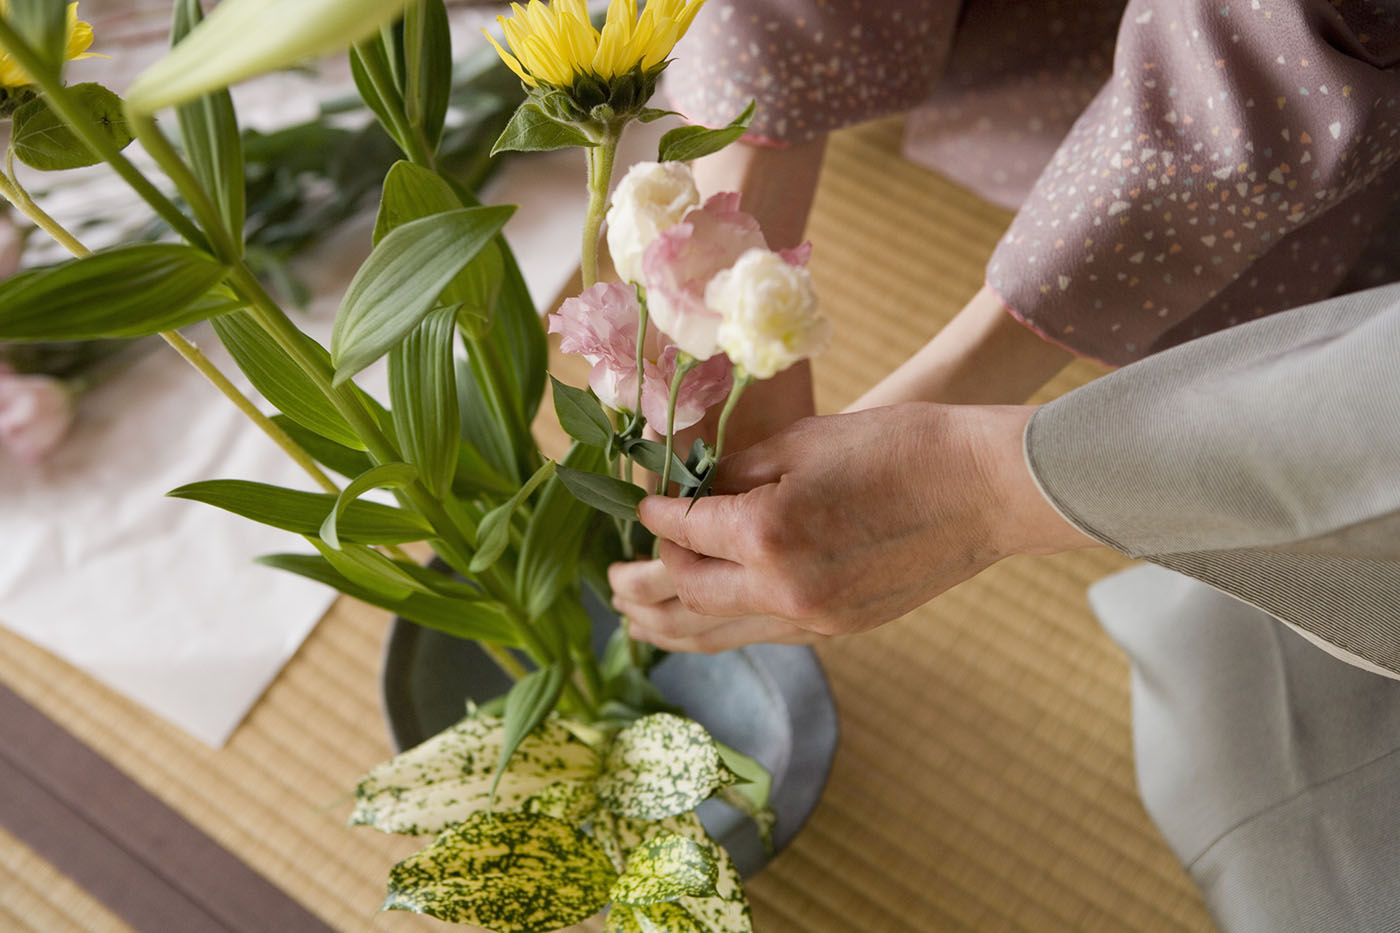 Ikebana Is the Sculptural Flower Arranging Technique You Should Try